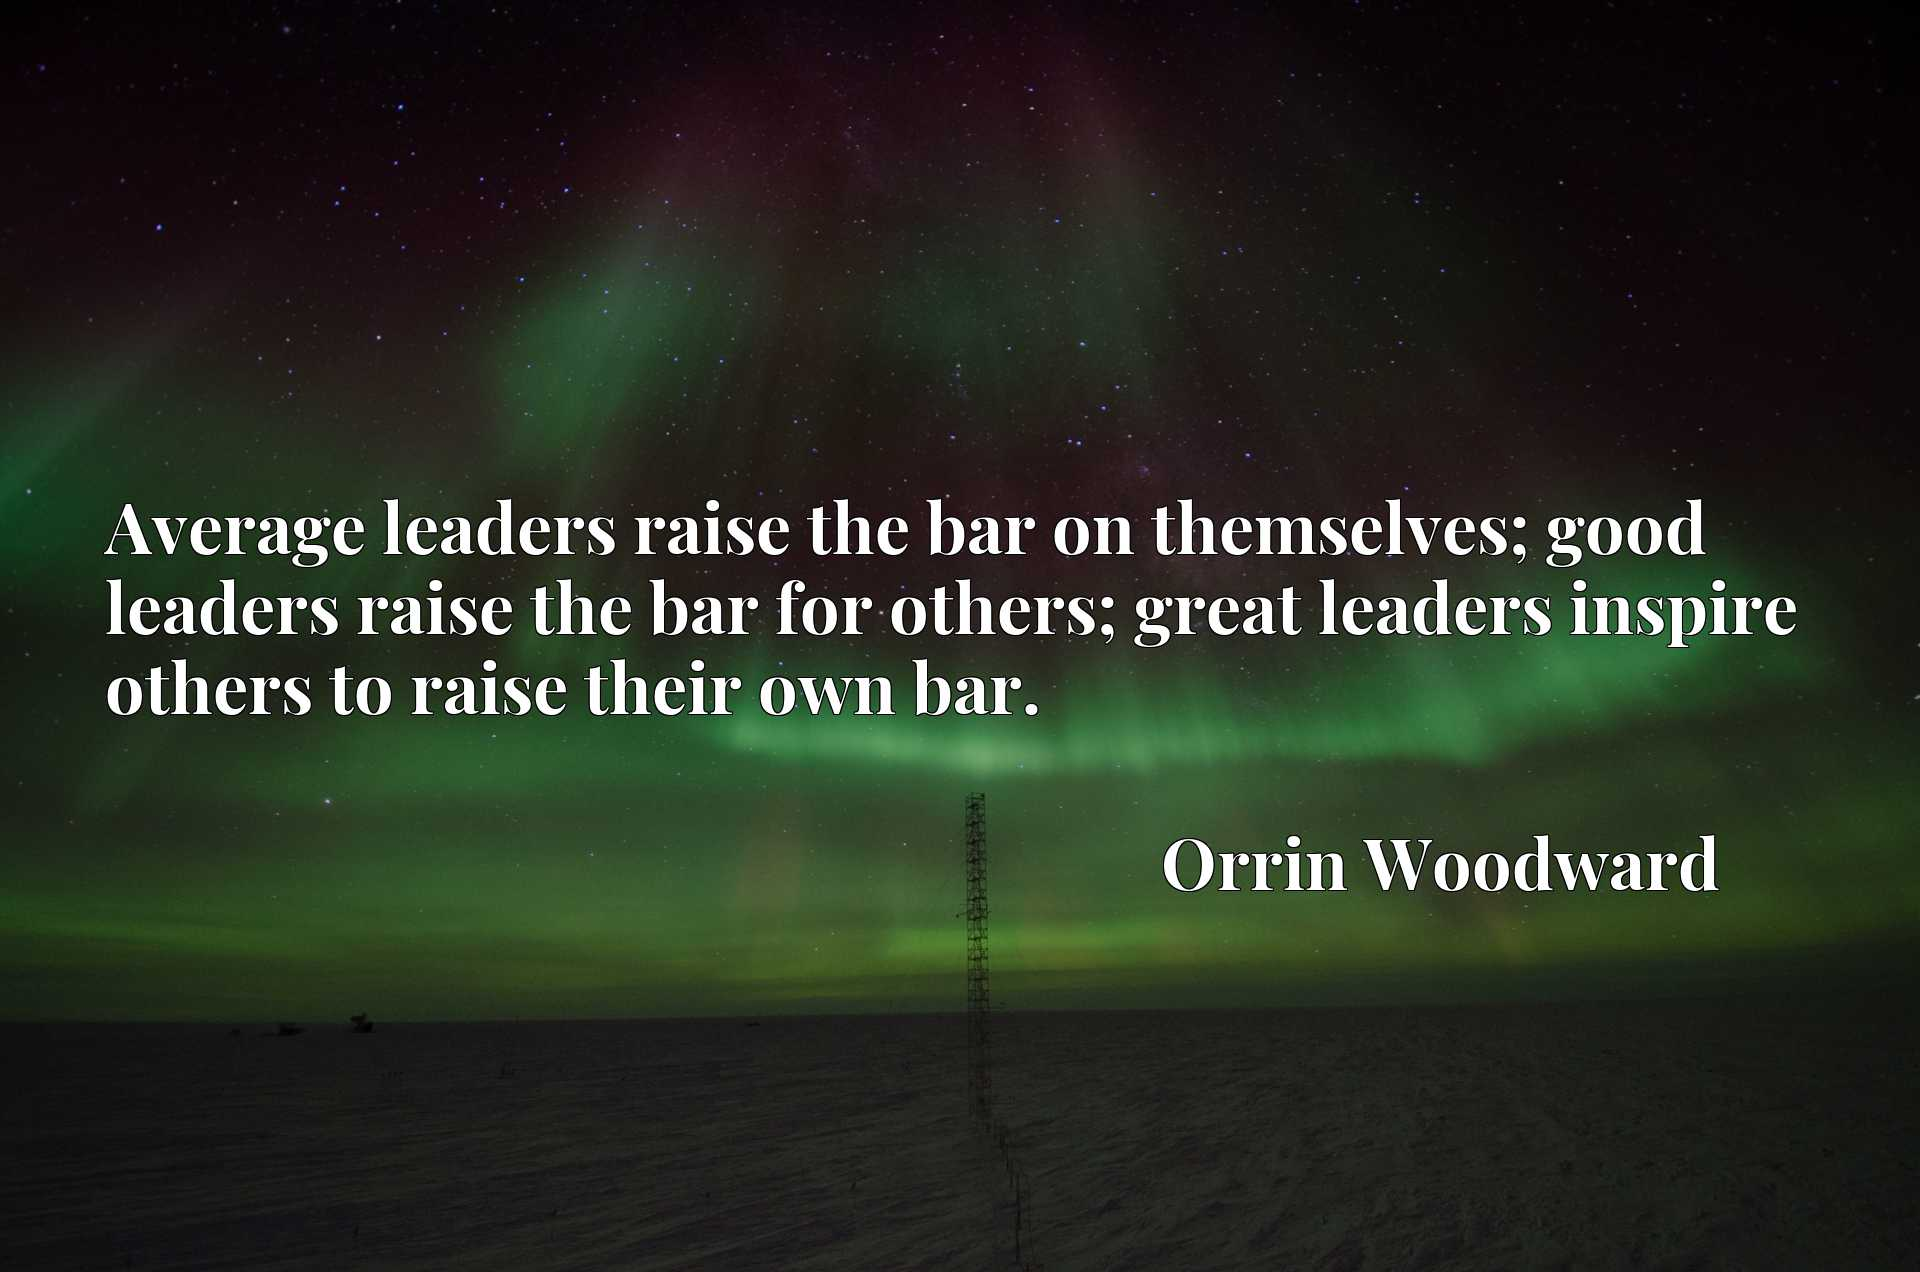 Average leaders raise the bar on themselves; good leaders raise the bar for others; great leaders inspire others to raise their own bar.